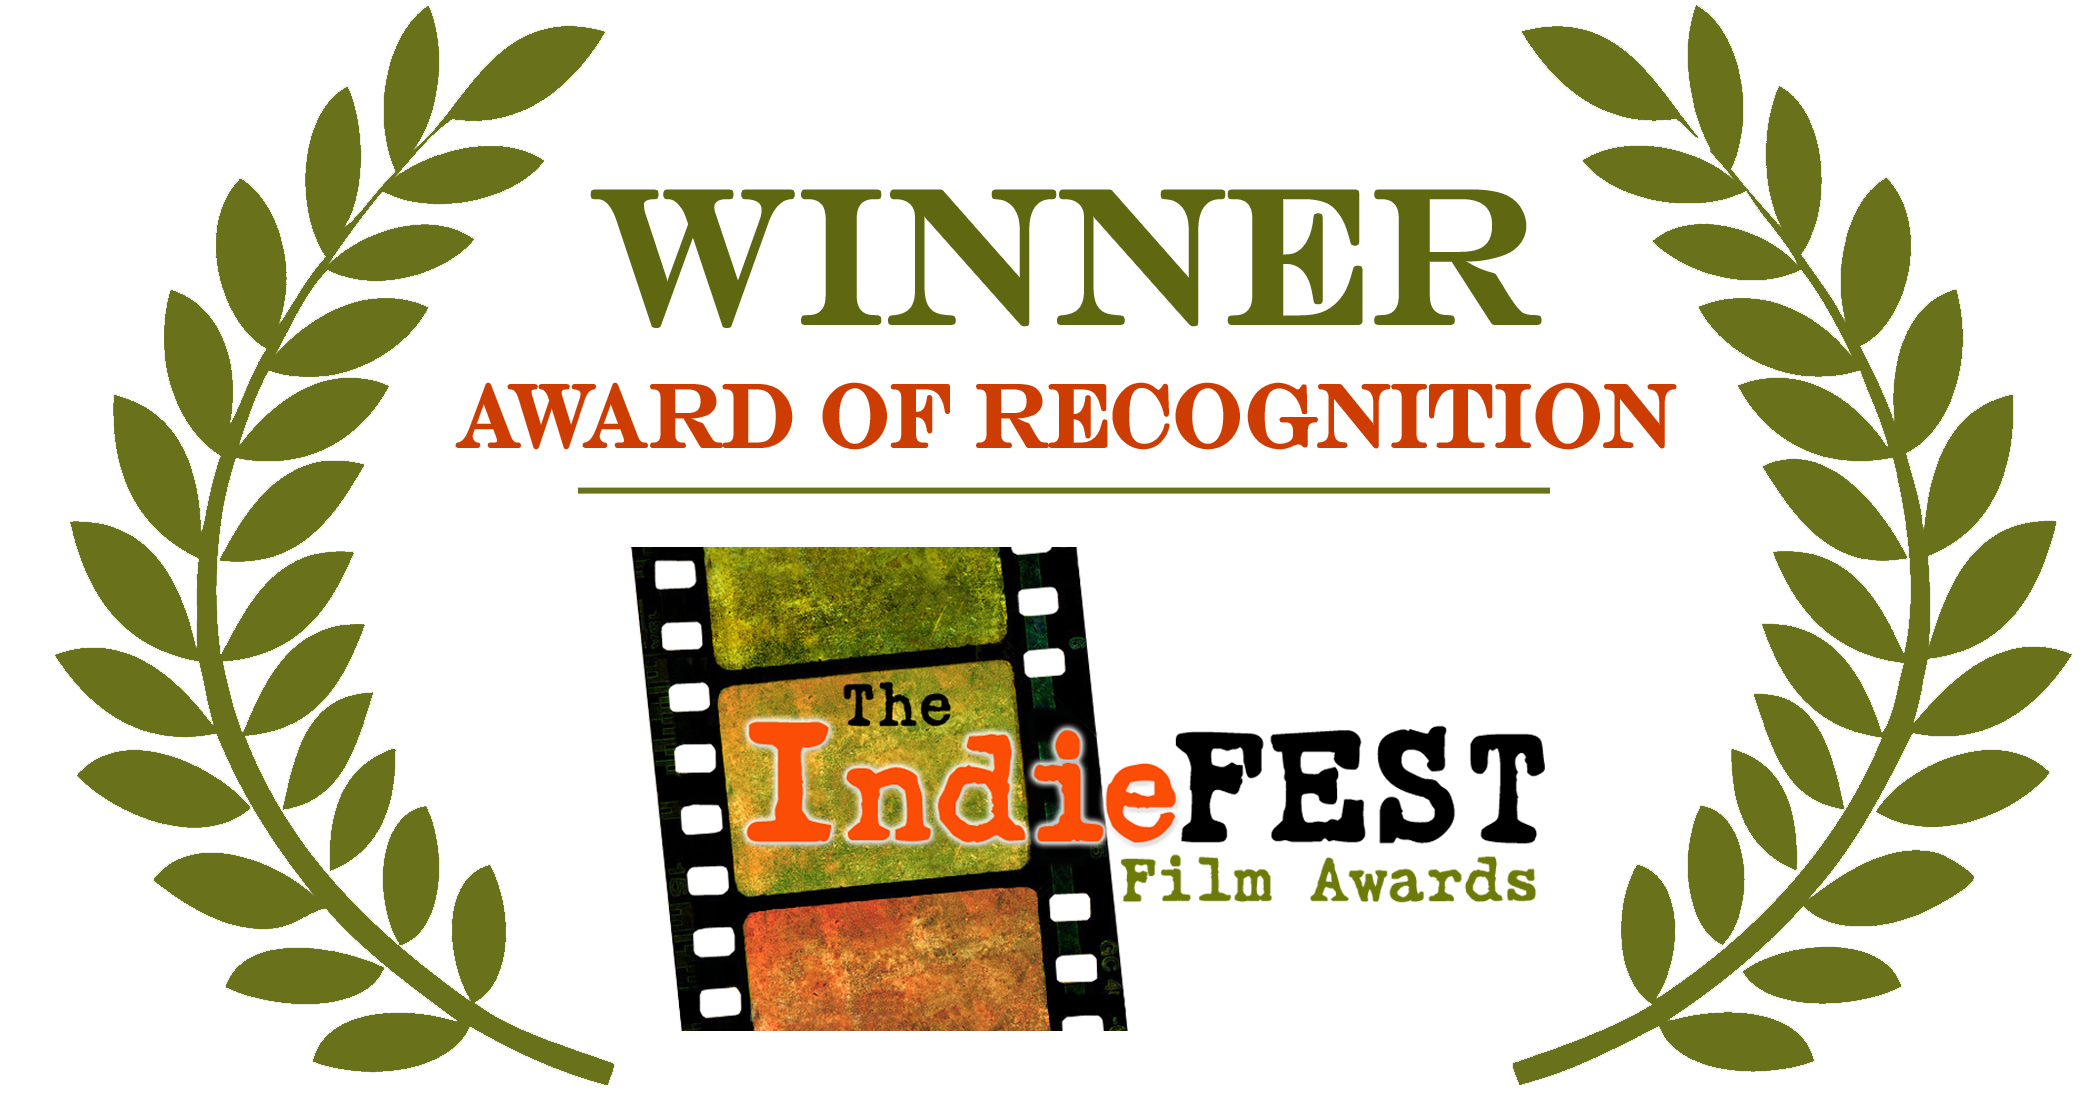 IndieFEST-Recognition-Color.png